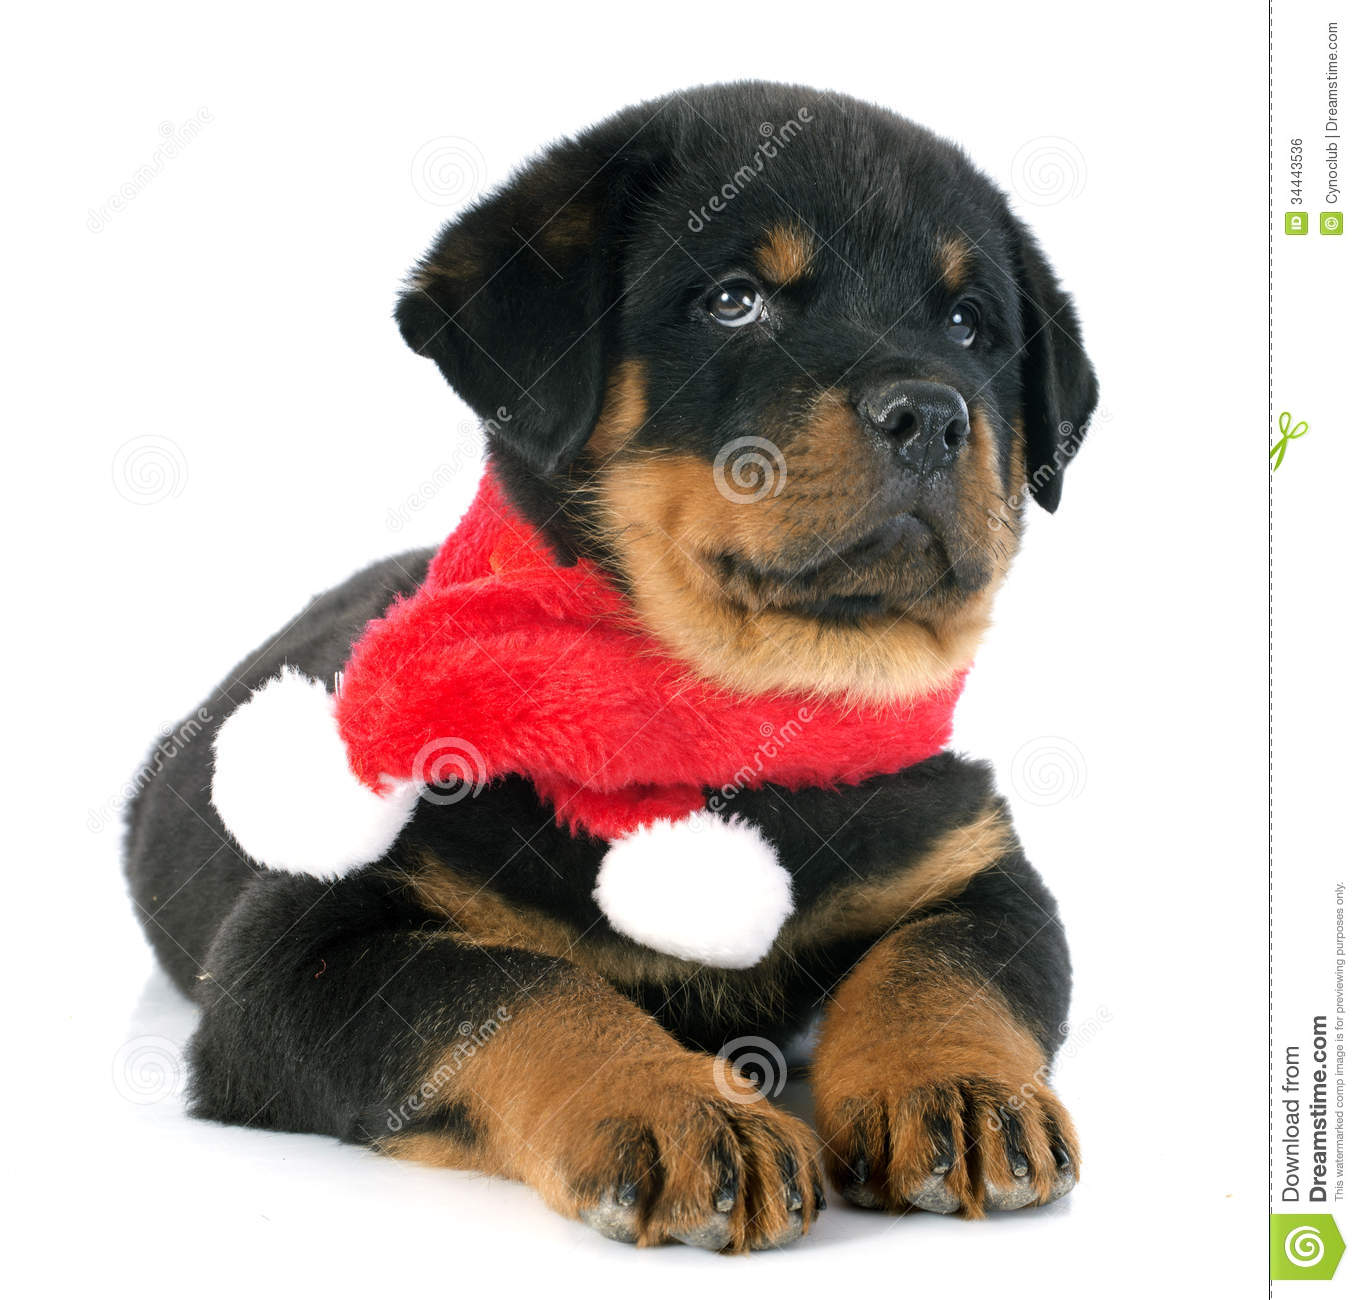 Rottweiler in a red scarf stock image. Image of fighter - 16976557